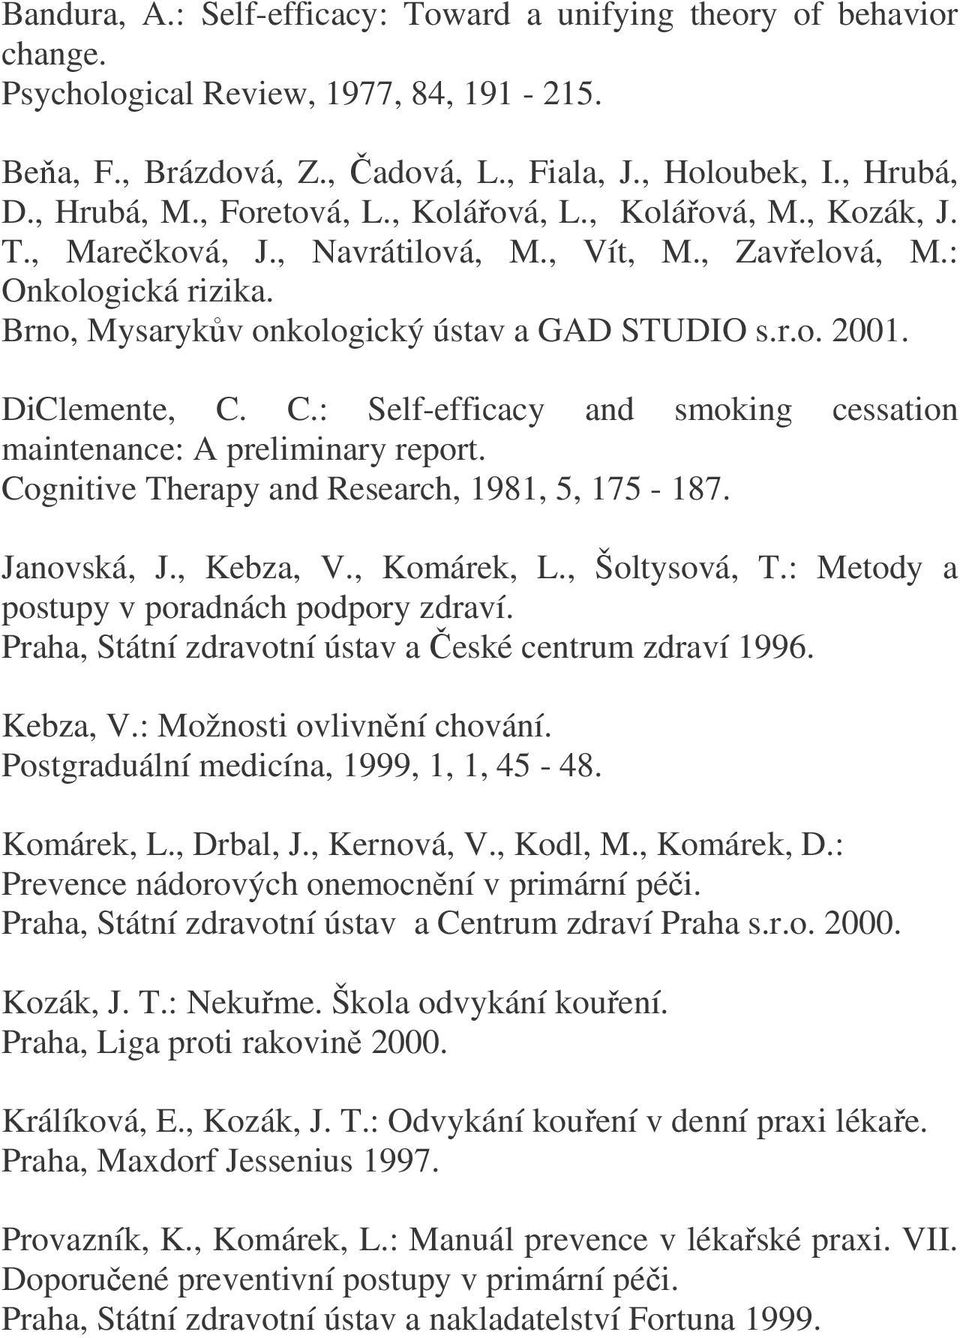 DiClemente, C. C.: Self-efficacy and smoking cessation maintenance: A preliminary report. Cognitive Therapy and Research, 1981, 5, 175-187. Janovská, J., Kebza, V., Komárek, L., Šoltysová, T.